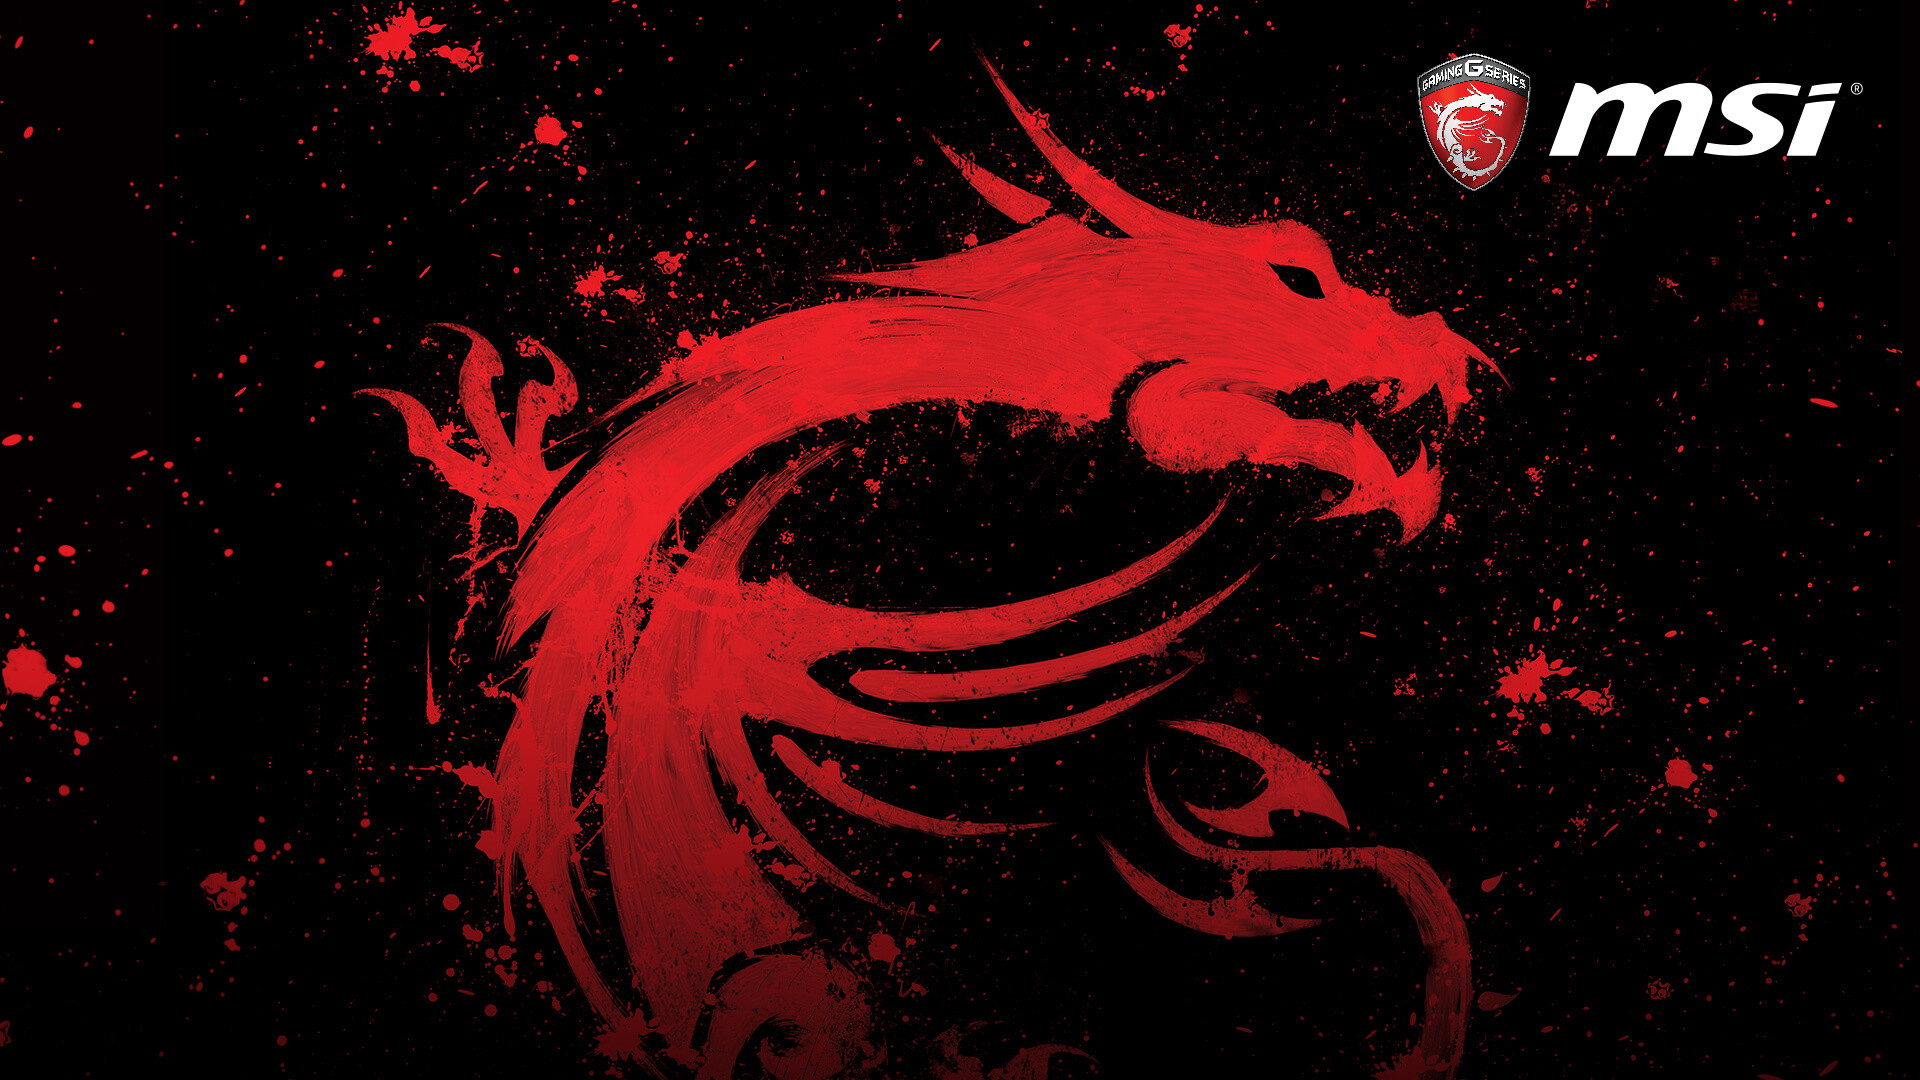 msi hd wallpapers 83 images